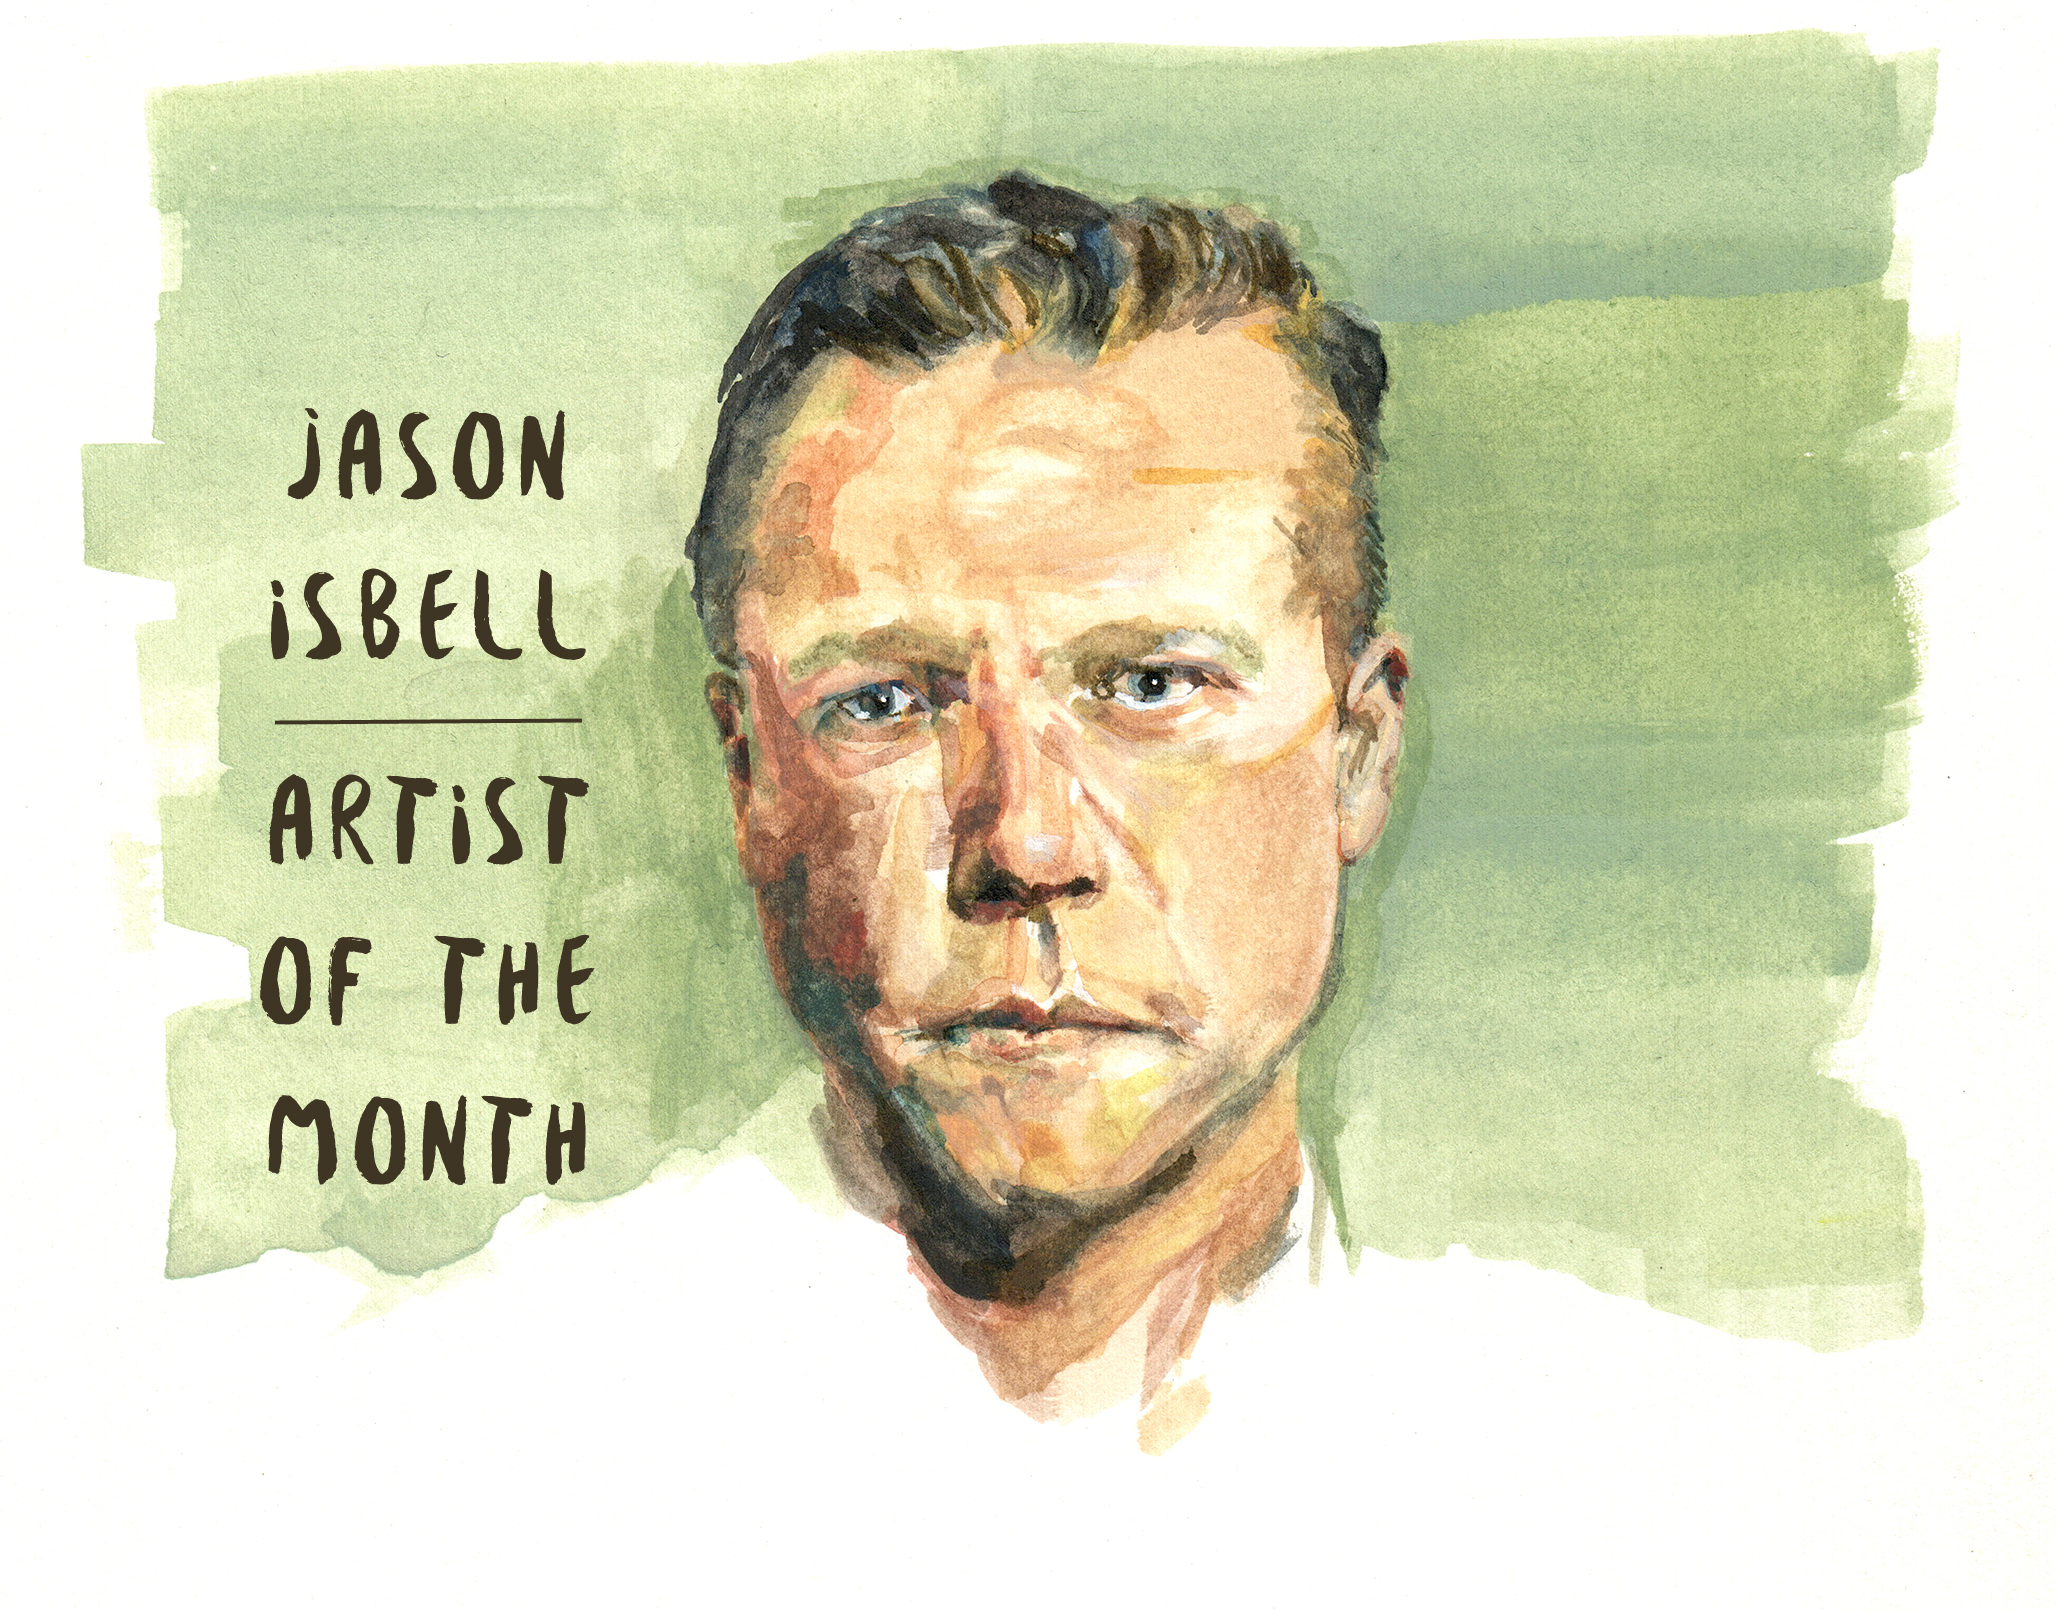 Jason Isbell: Finding the Common Ground